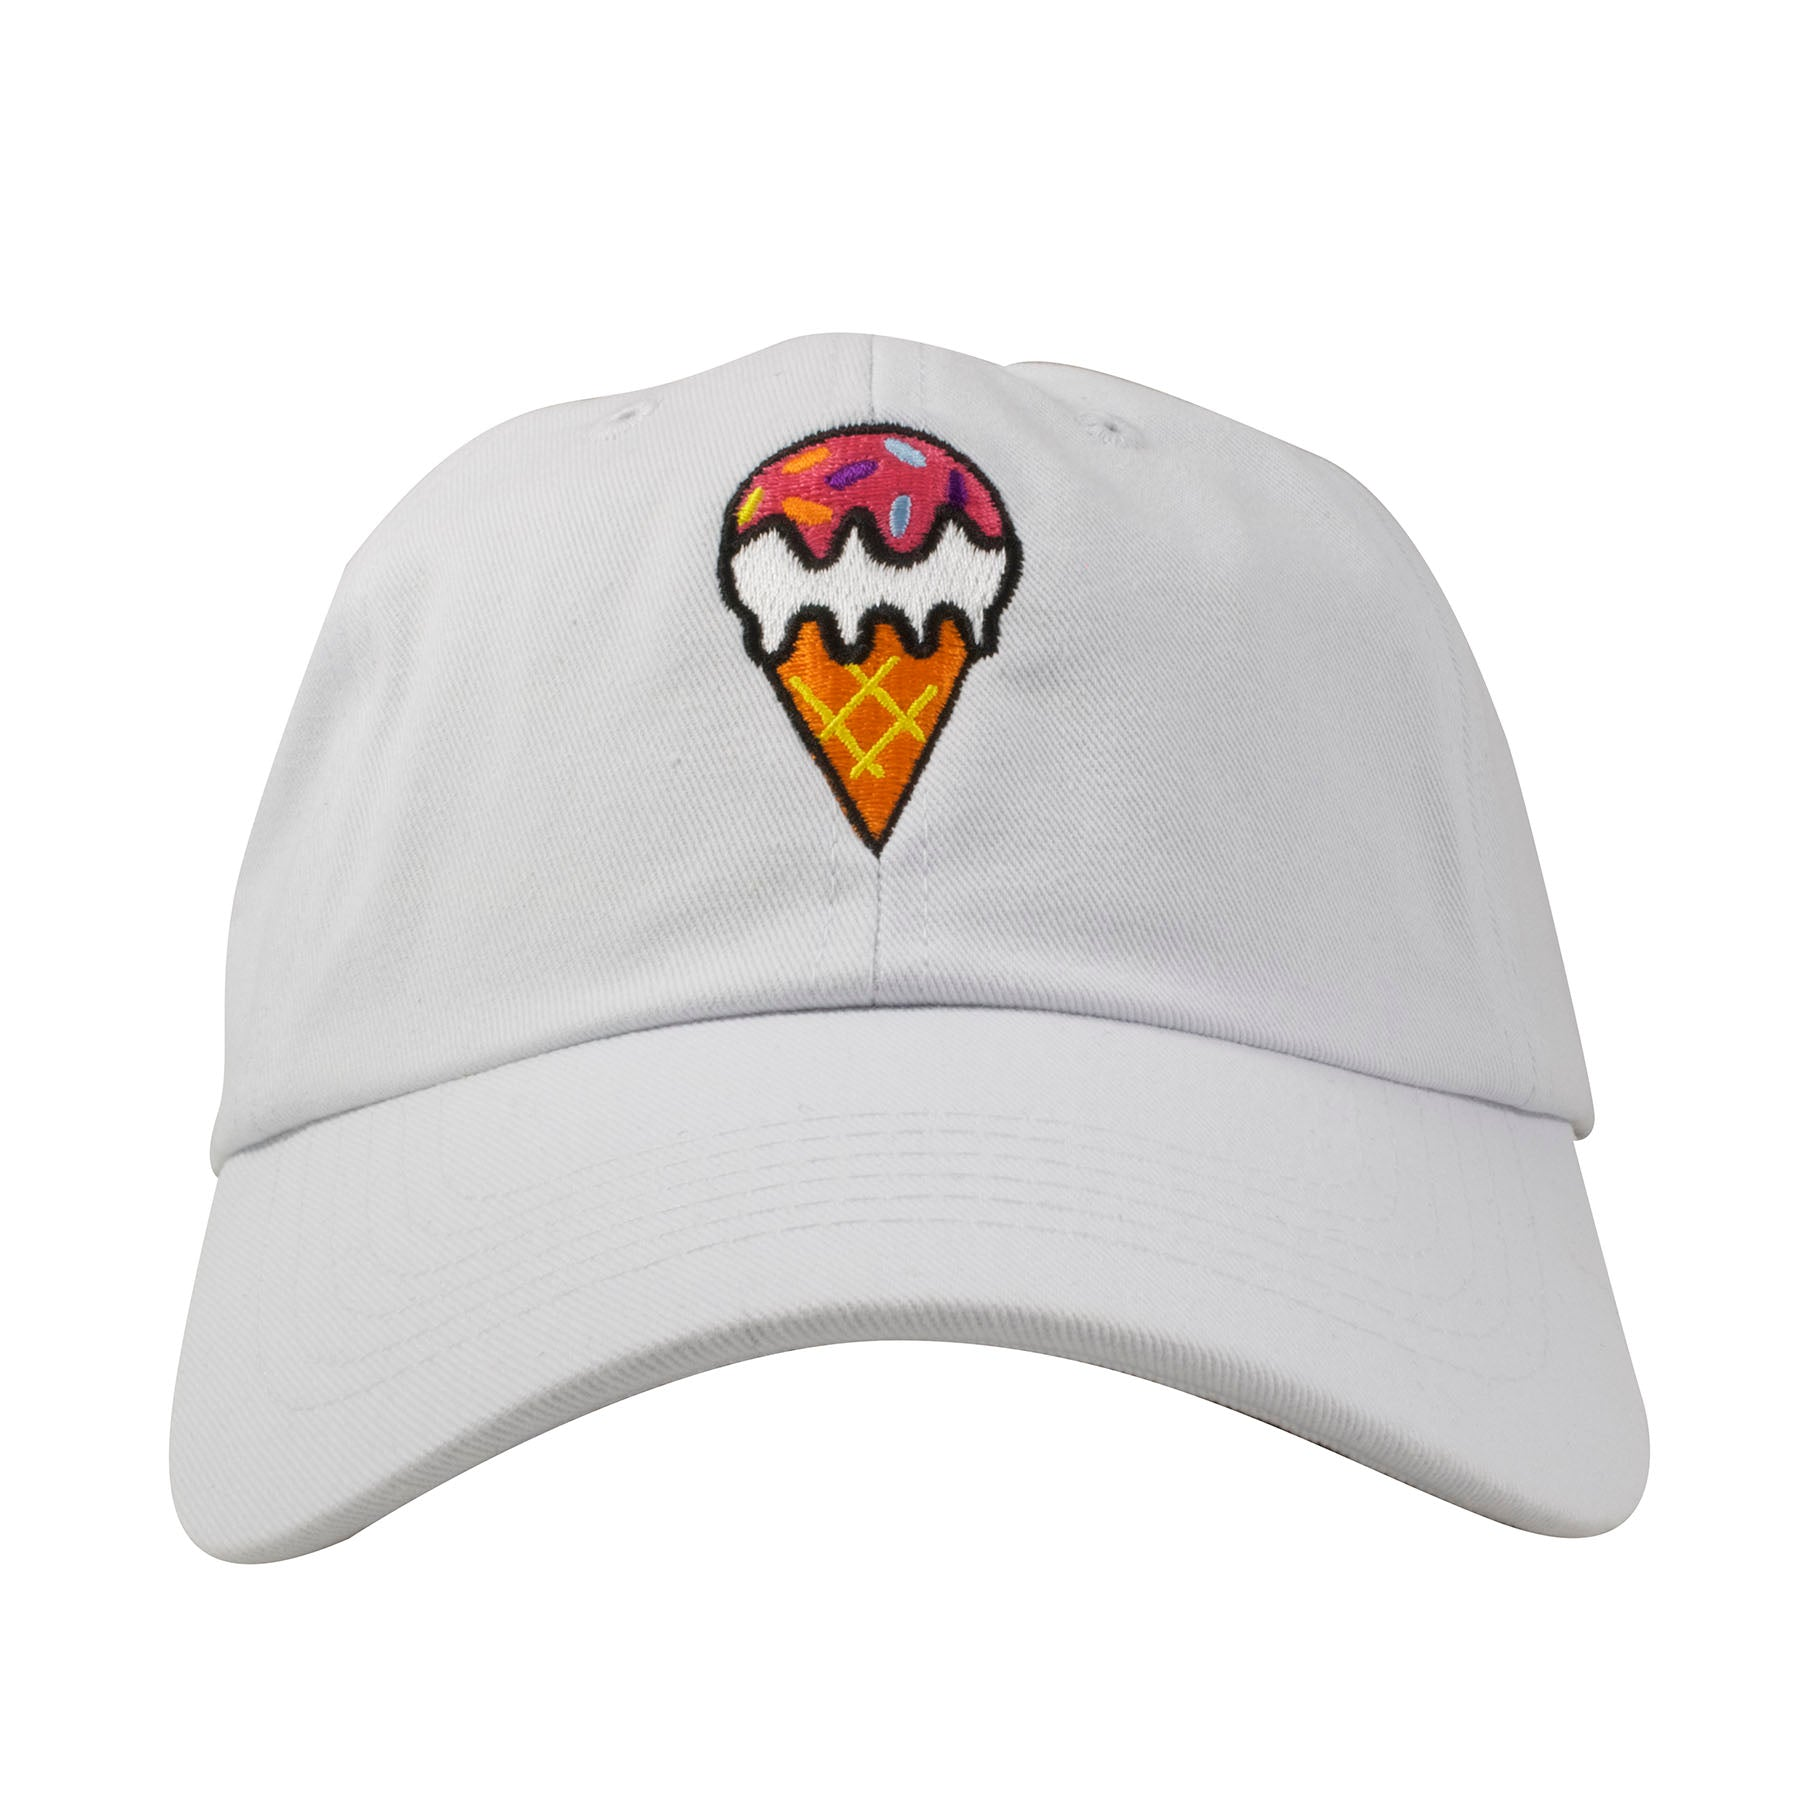 9378f322f8b The ice cream cone embroidered on the front of the white ice cream cone dad  hat